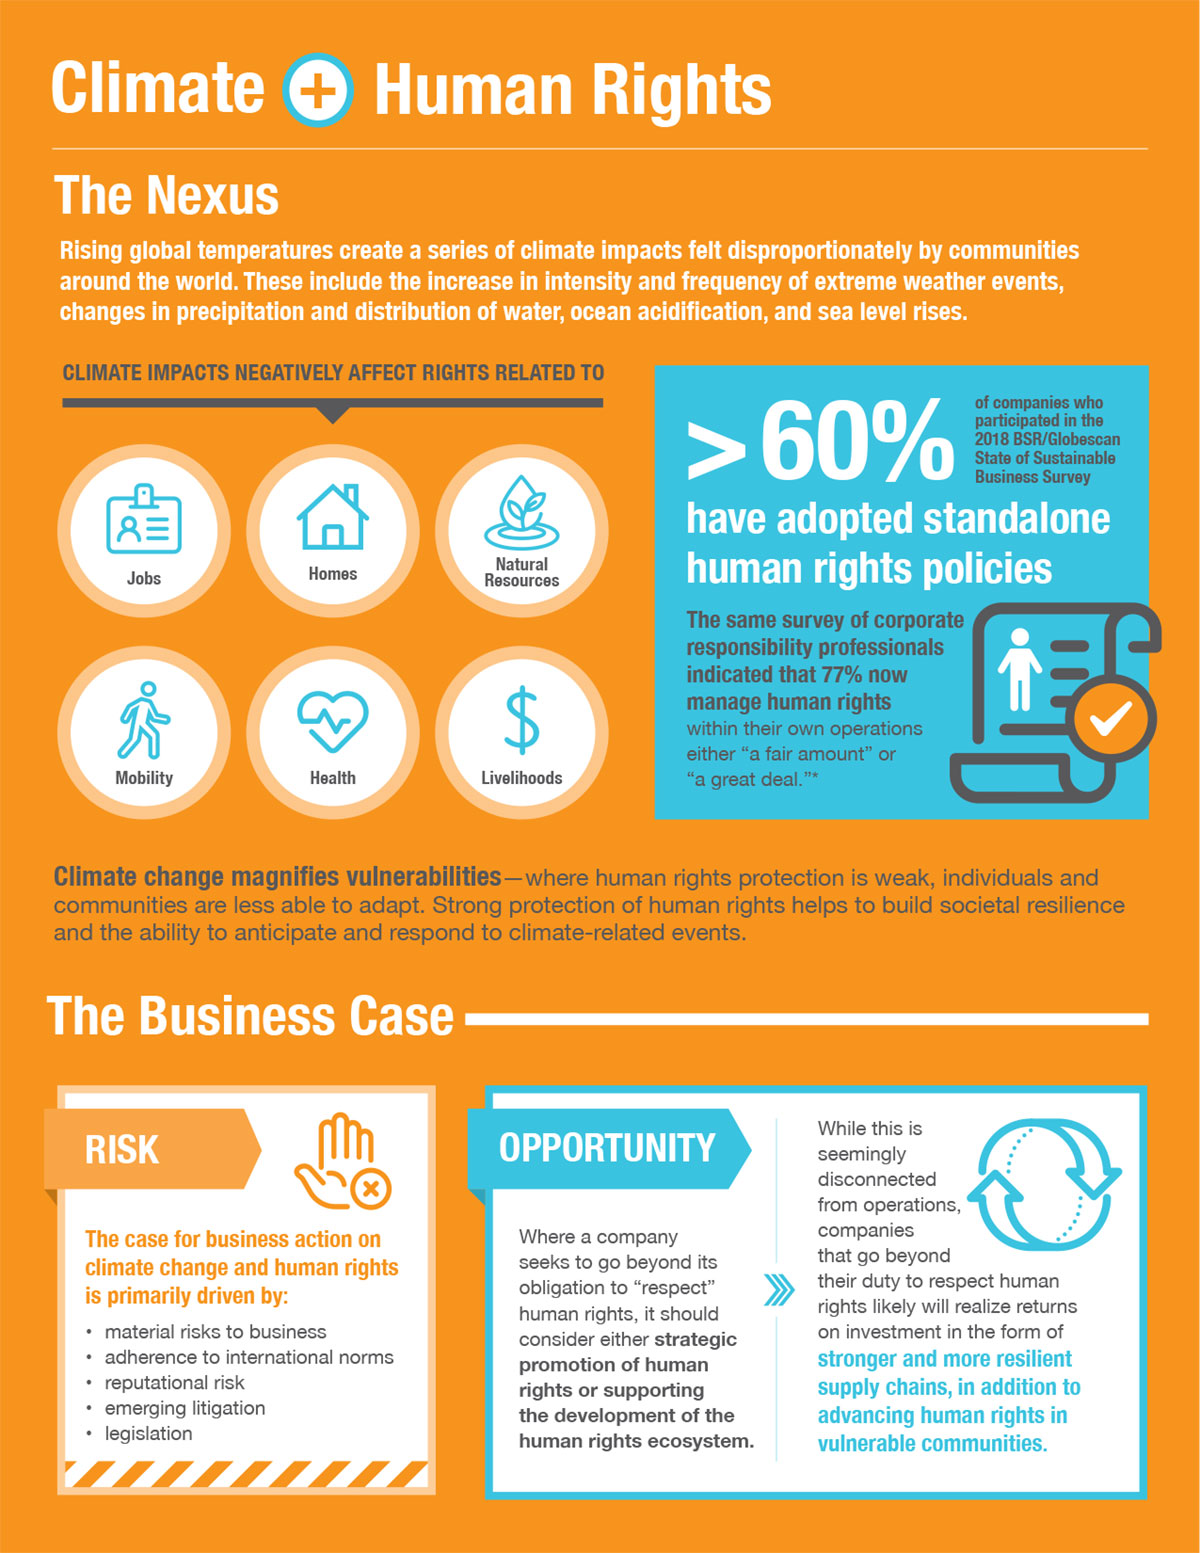 Climate Nexus: Human Rights, infographic